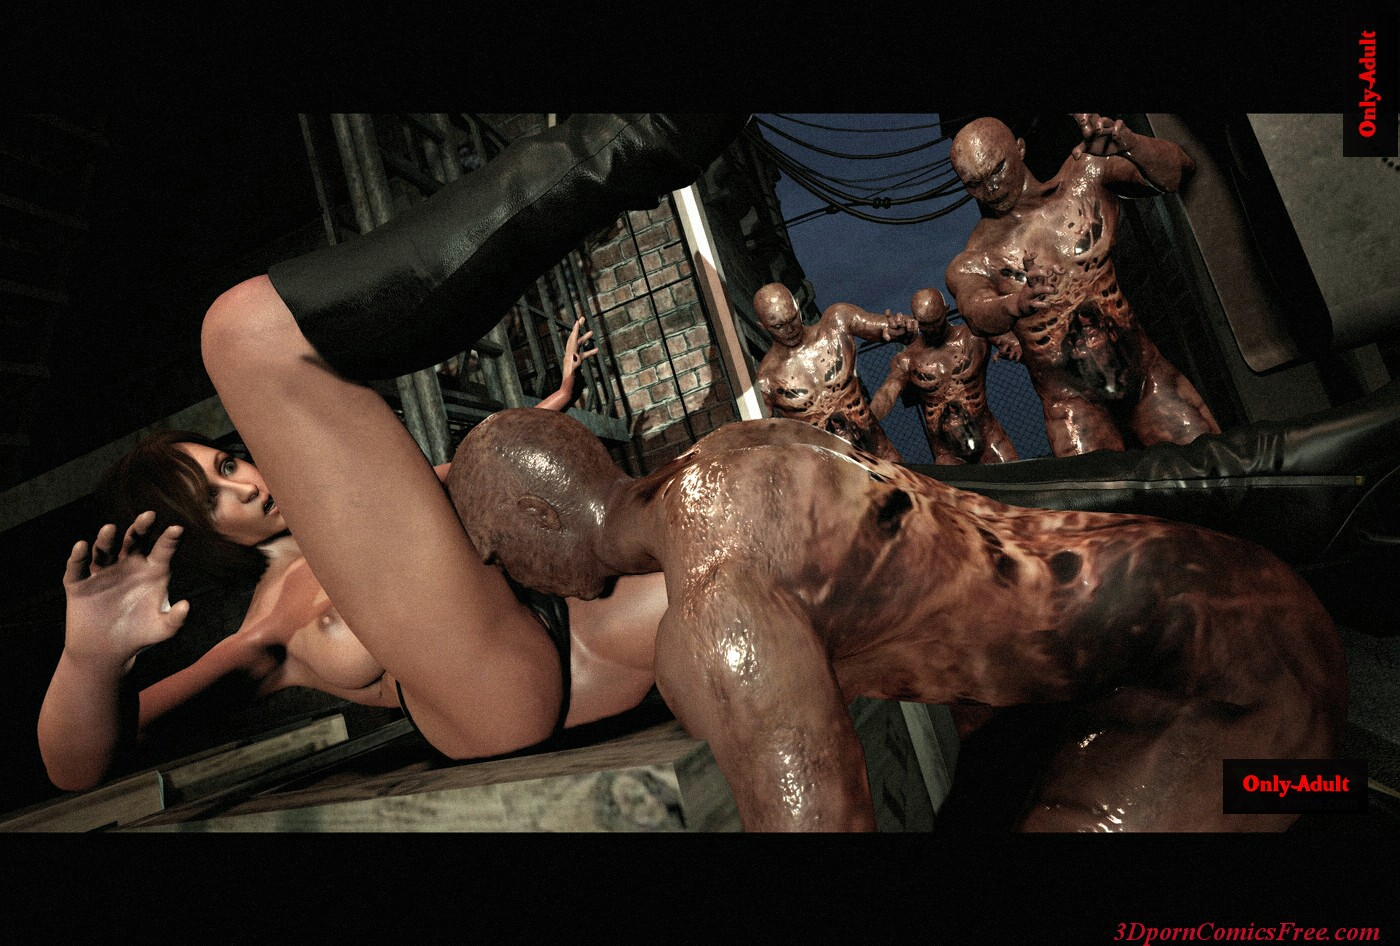 from Tripp resident evil porn free videos